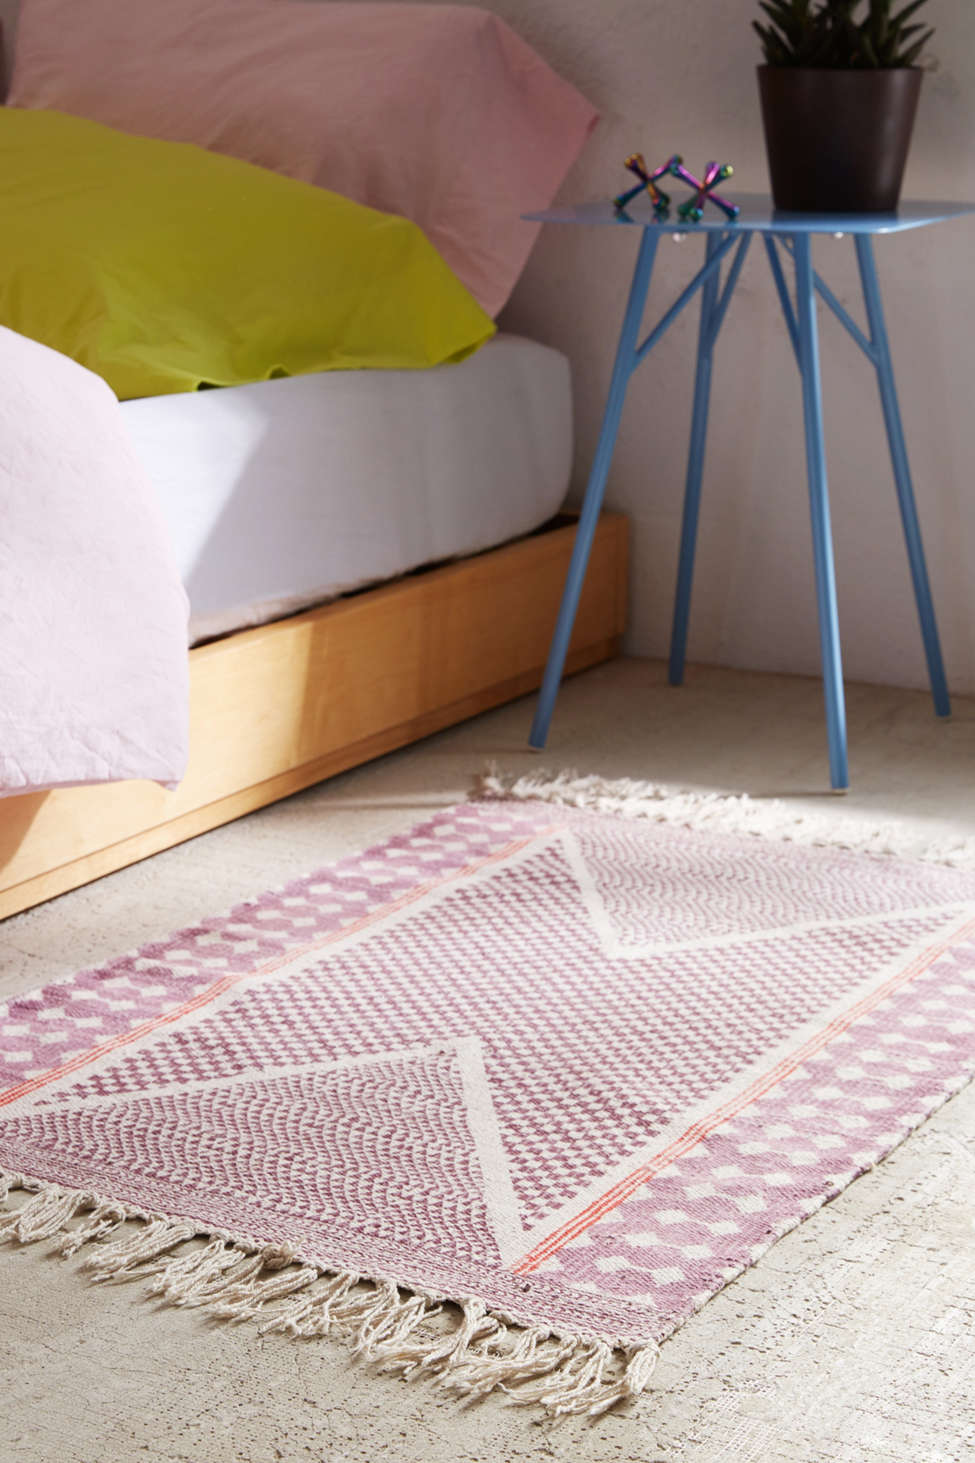 MUST PIN! Rugs can be so expensive, but this is a fabulous list of where to buy affordable rugs. I never would have thought of some of these stores as places to buy affordable rugs. So glad I found this pin!